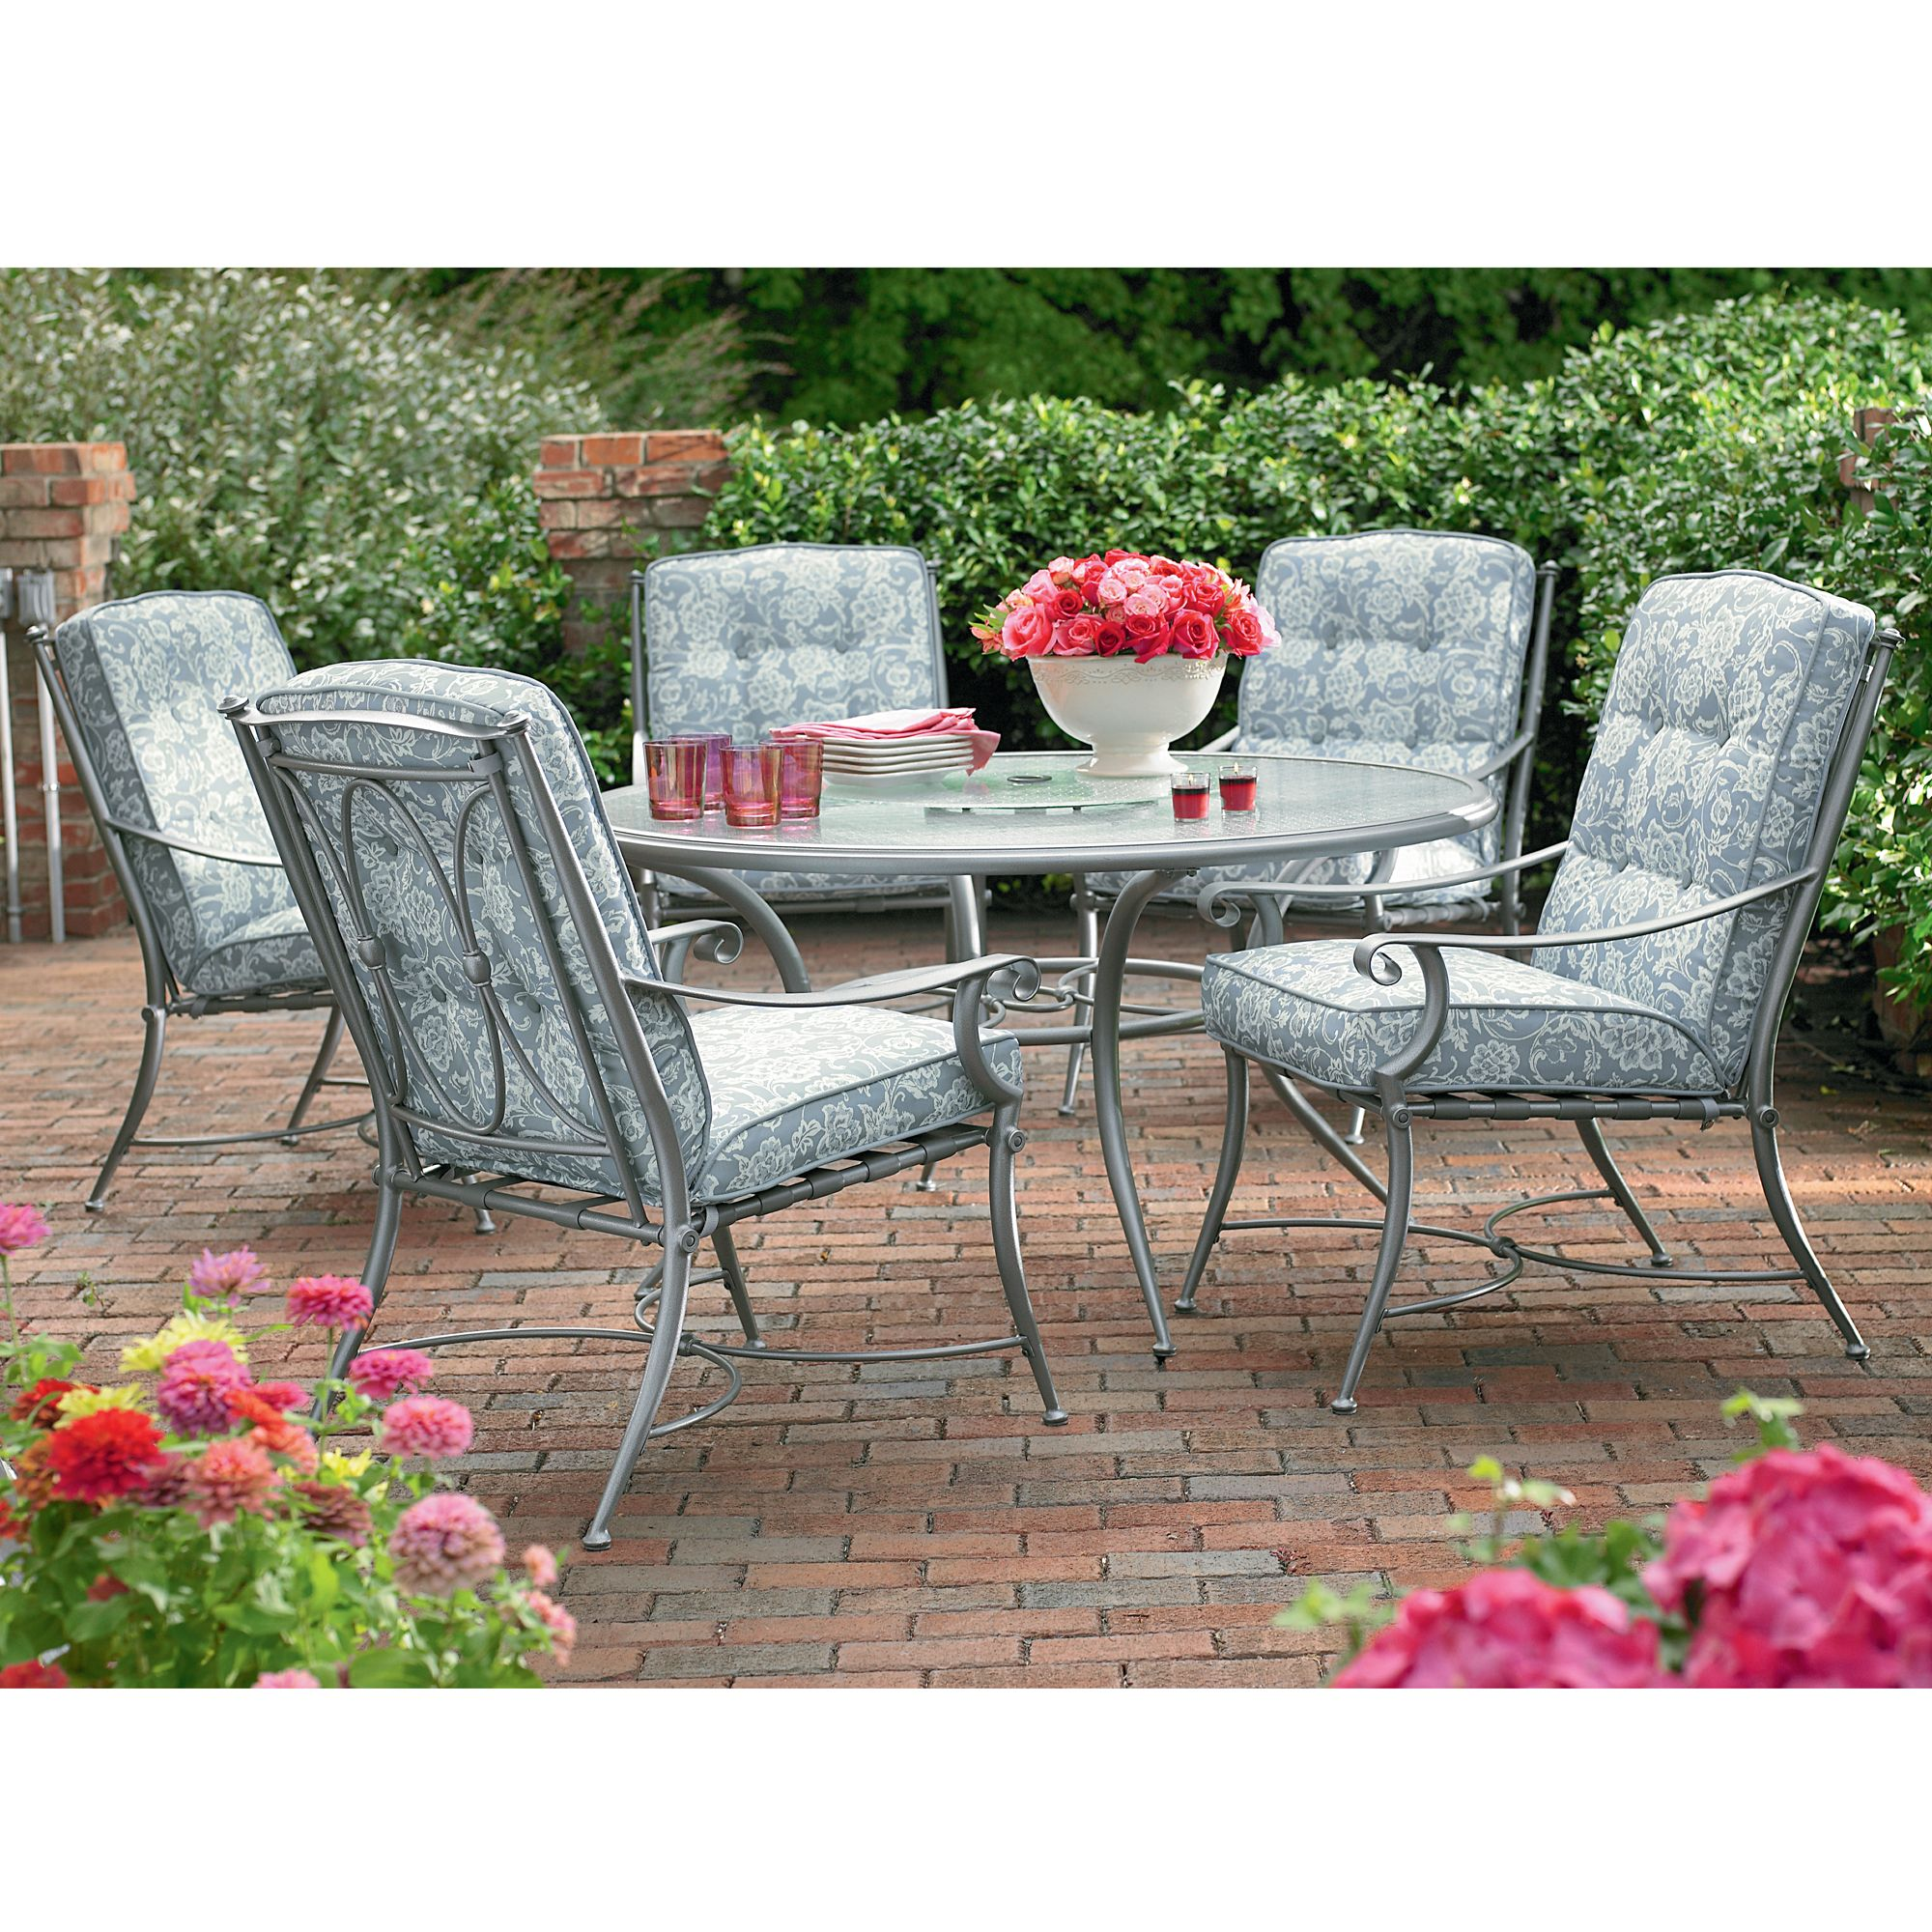 Jaclyn Smith Today Addison 5 Pc Seating Set Best